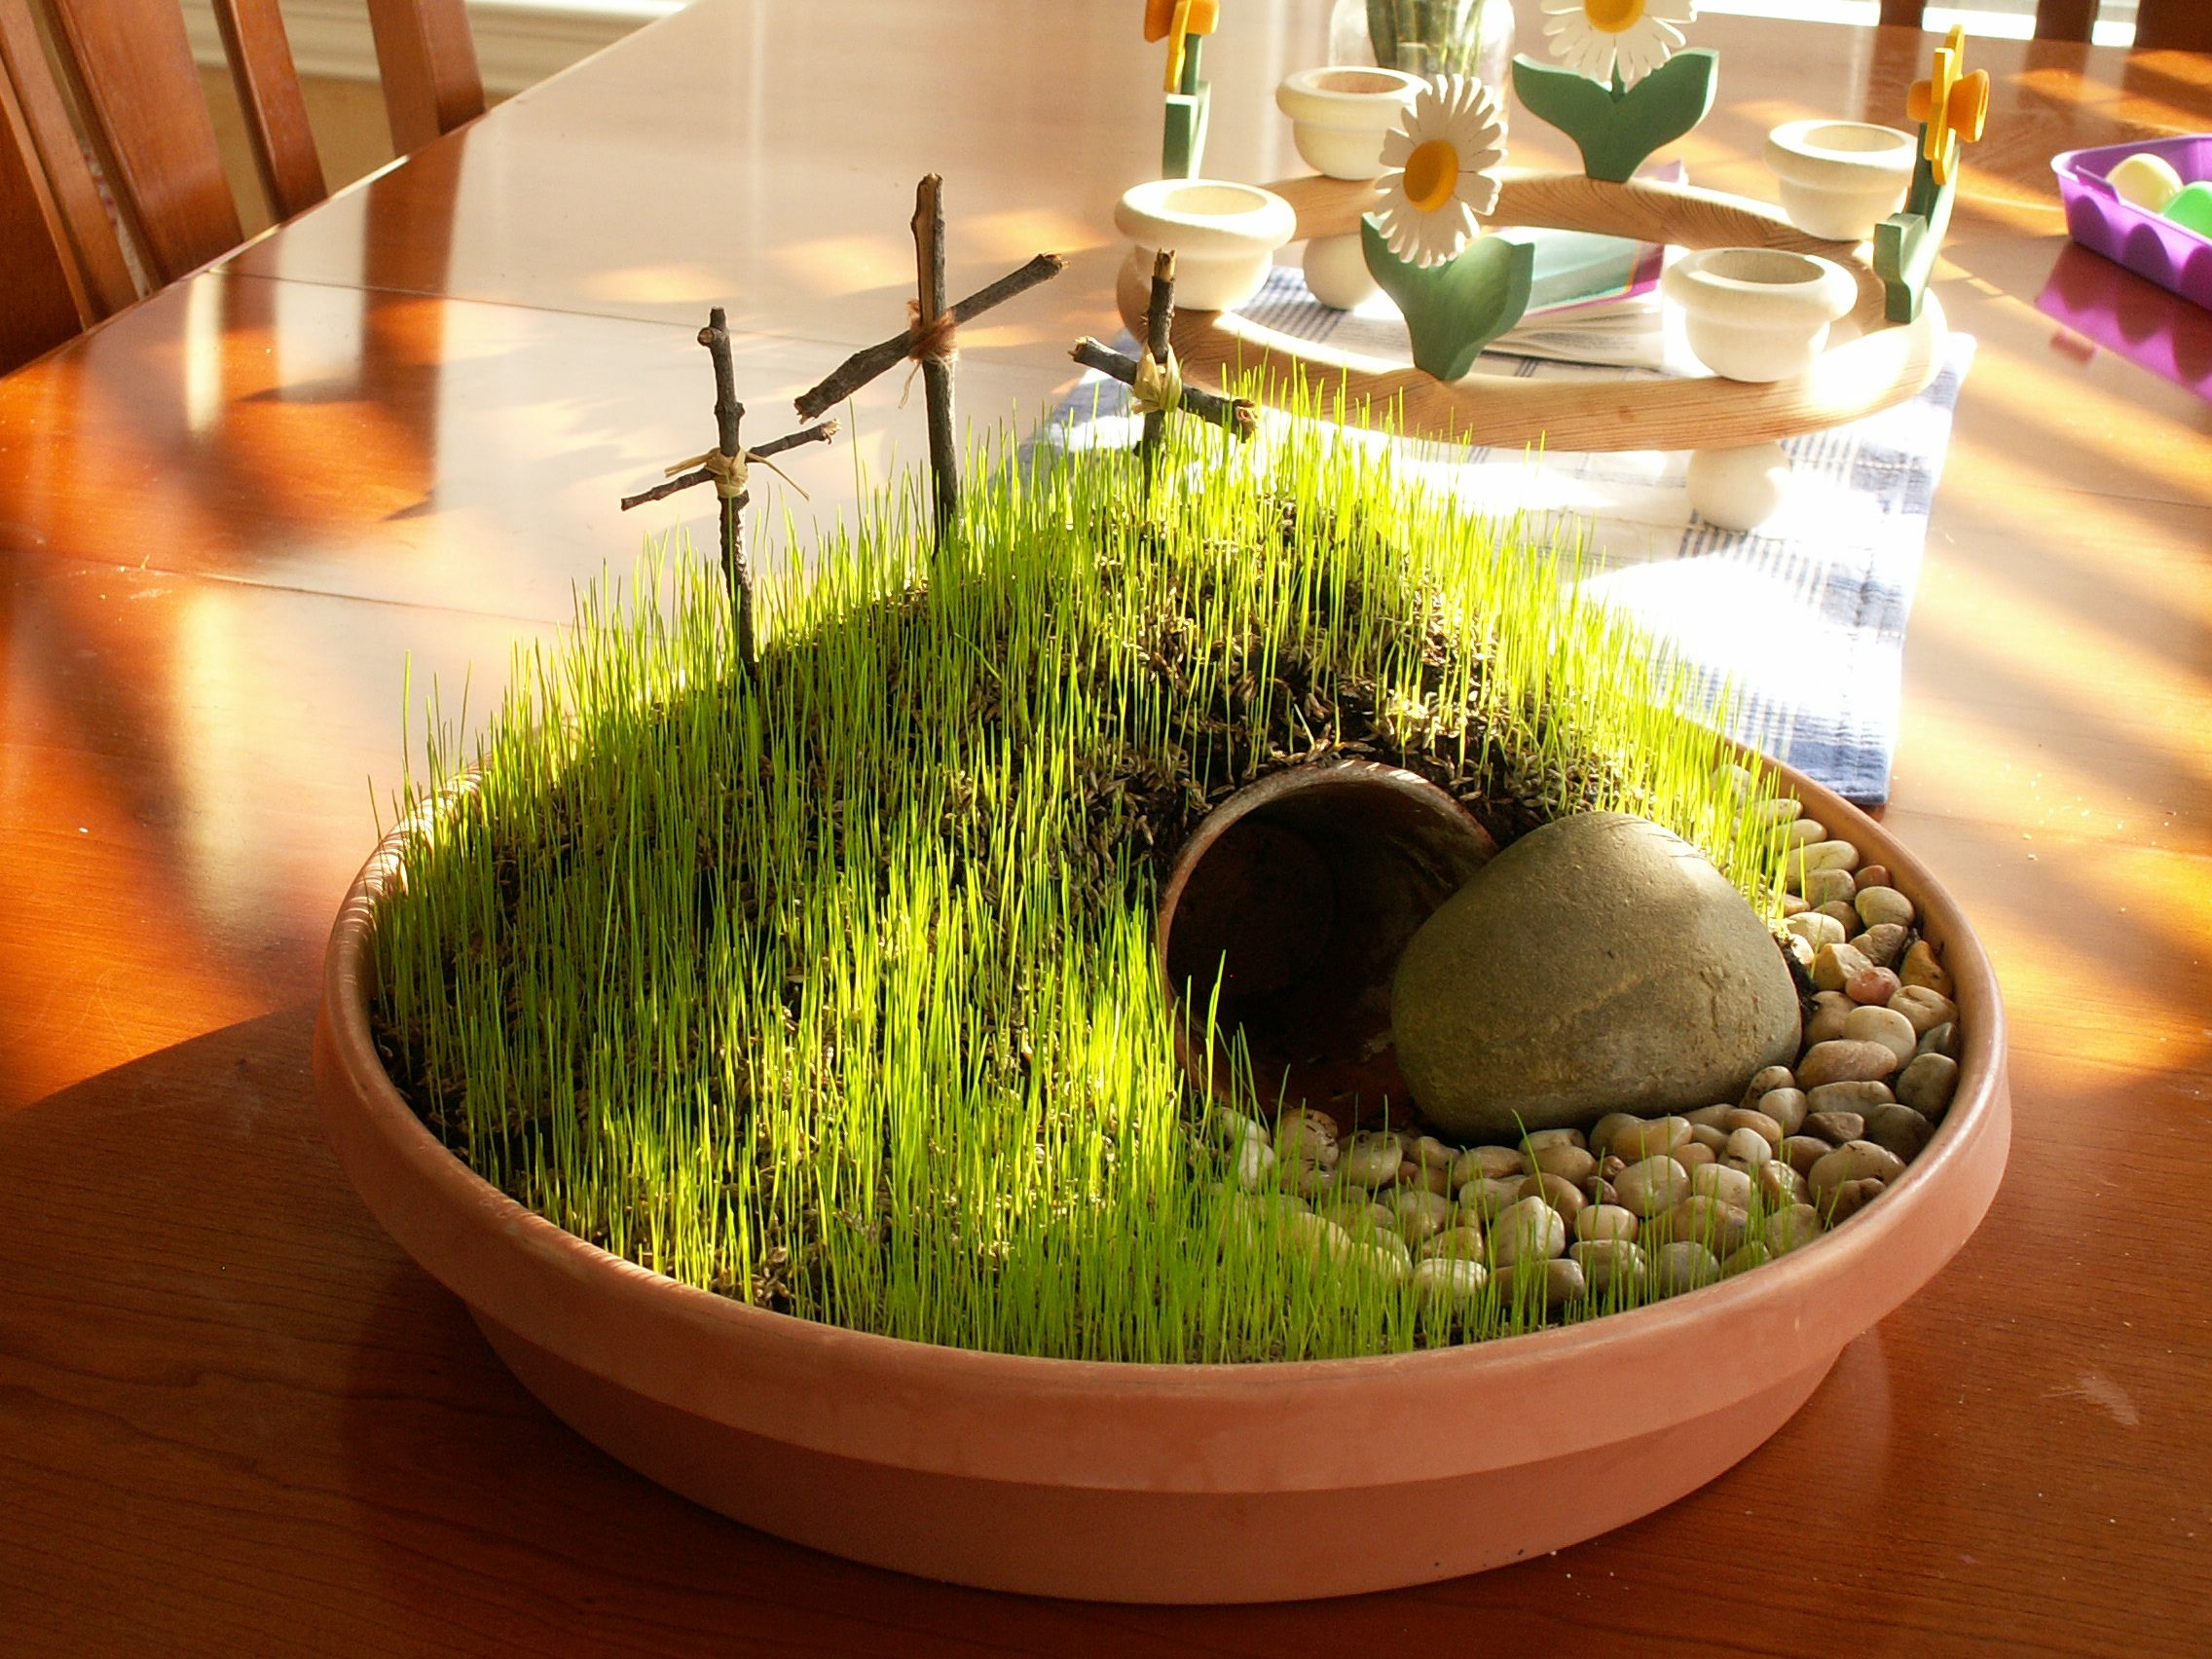 Christian easter decor - 54 Outstanding Lenten Arts And Crafts Ideas